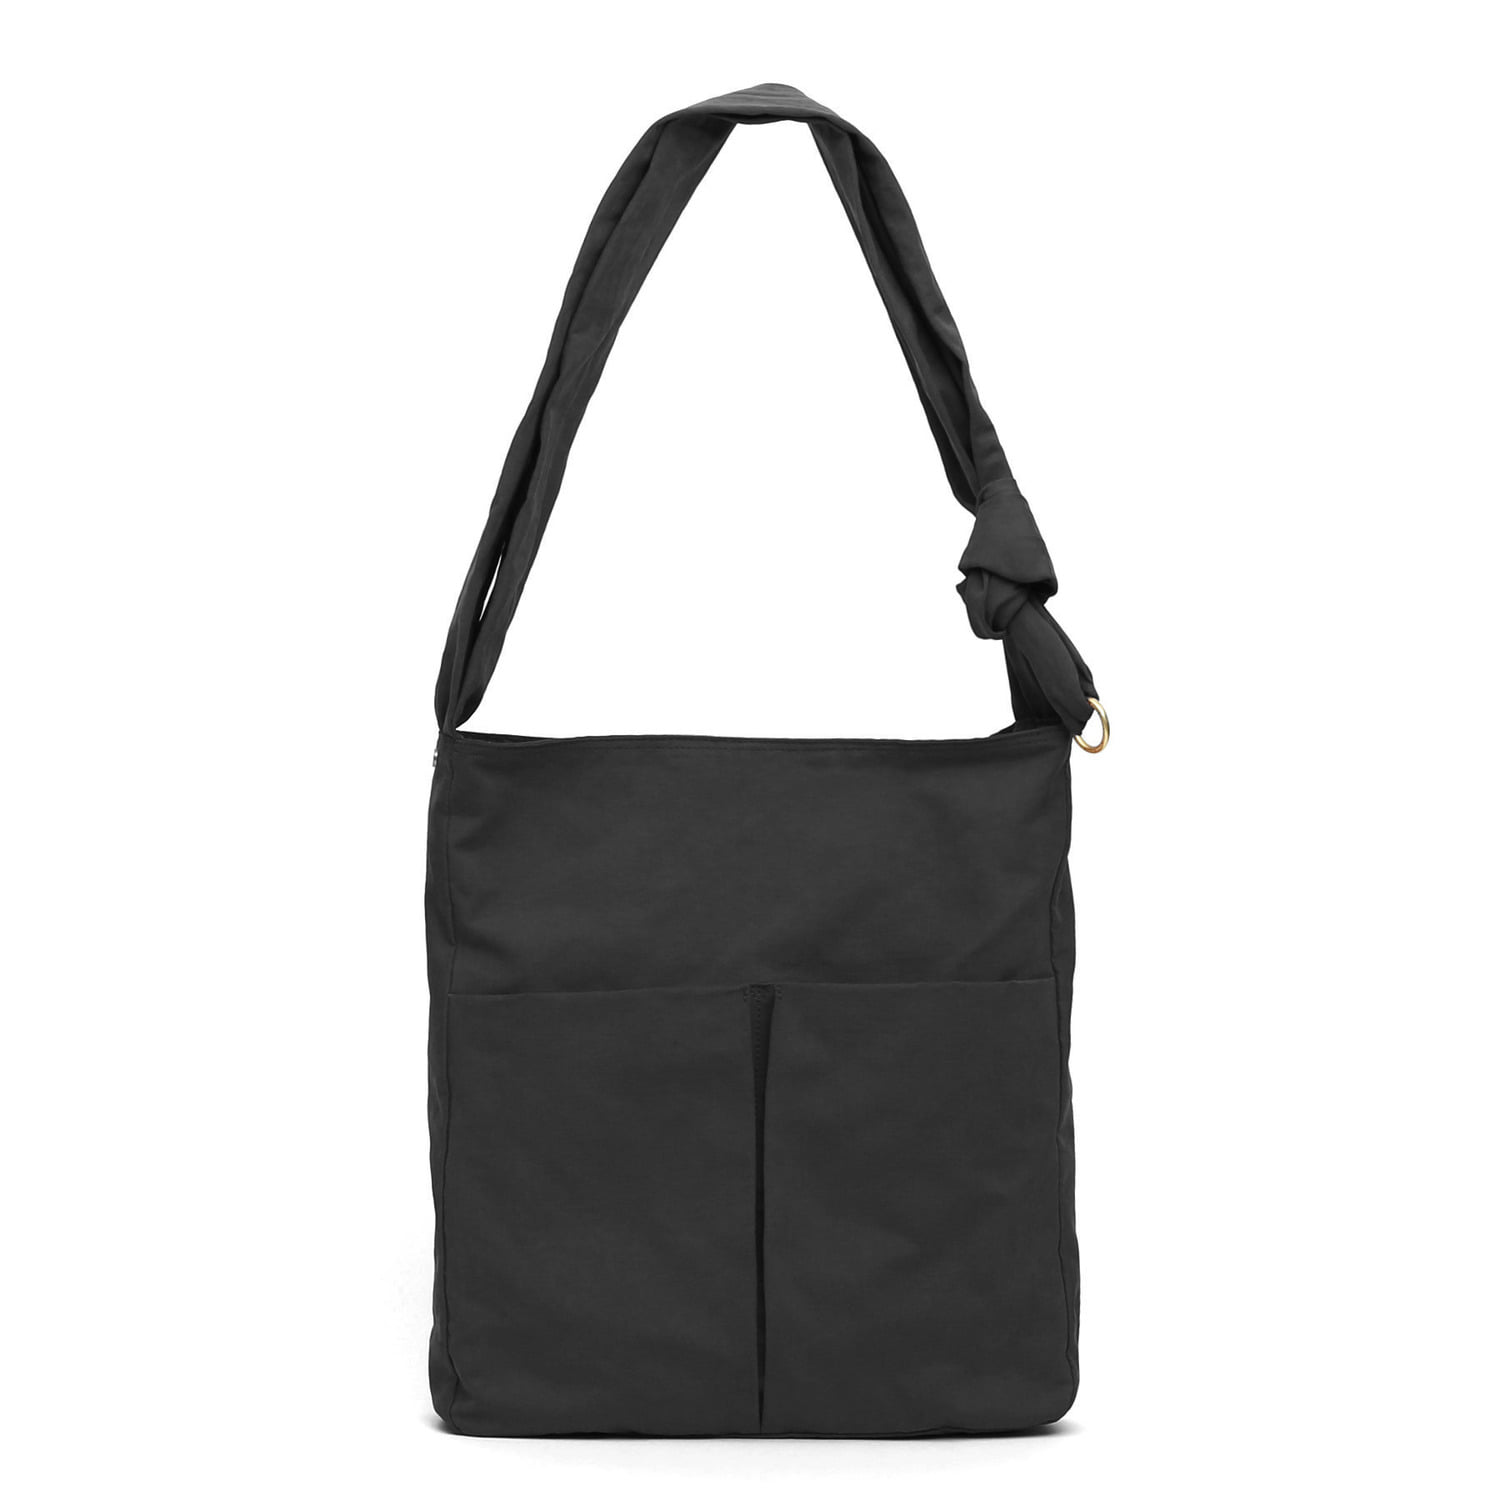 [2차 재입고] SQUARE BAG / WRINKLE / NPC / DARK BLACK